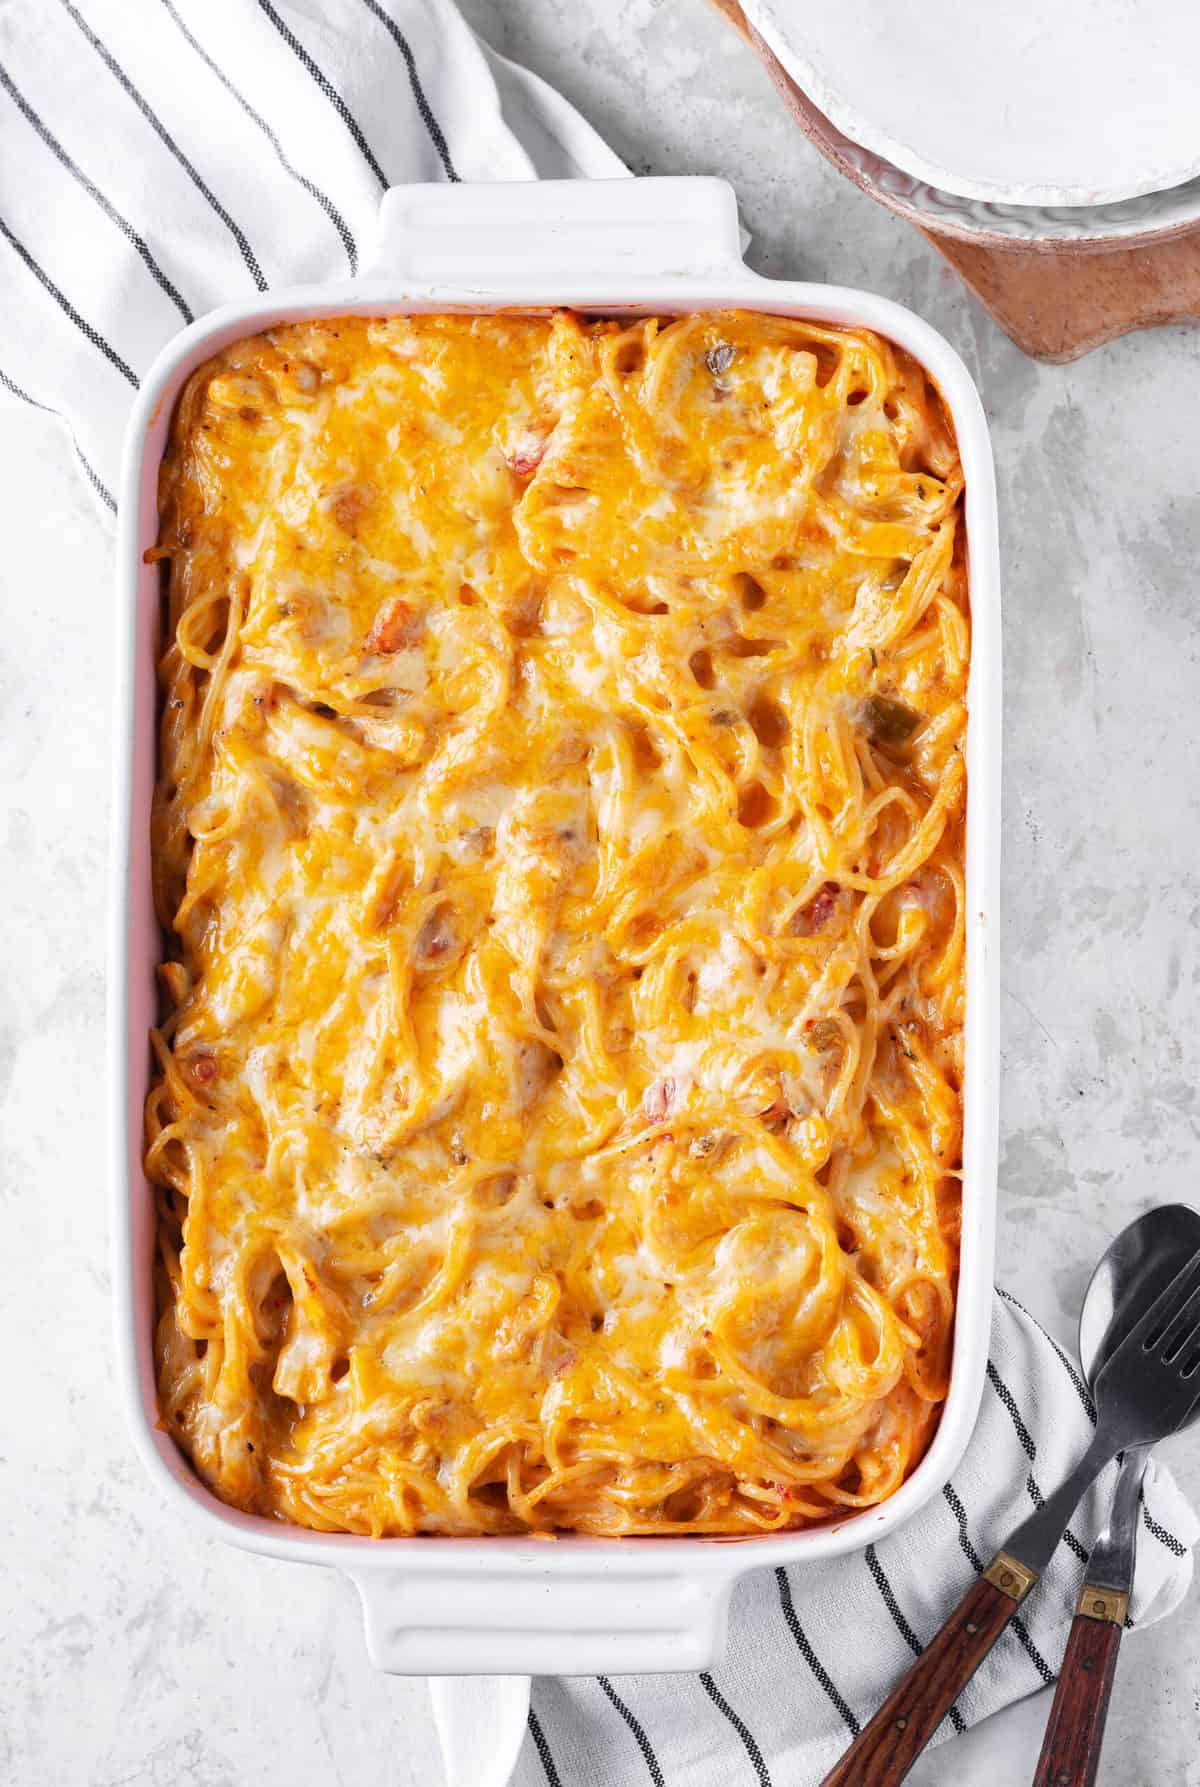 chicken spaghetti entree baked in a white casserole dish